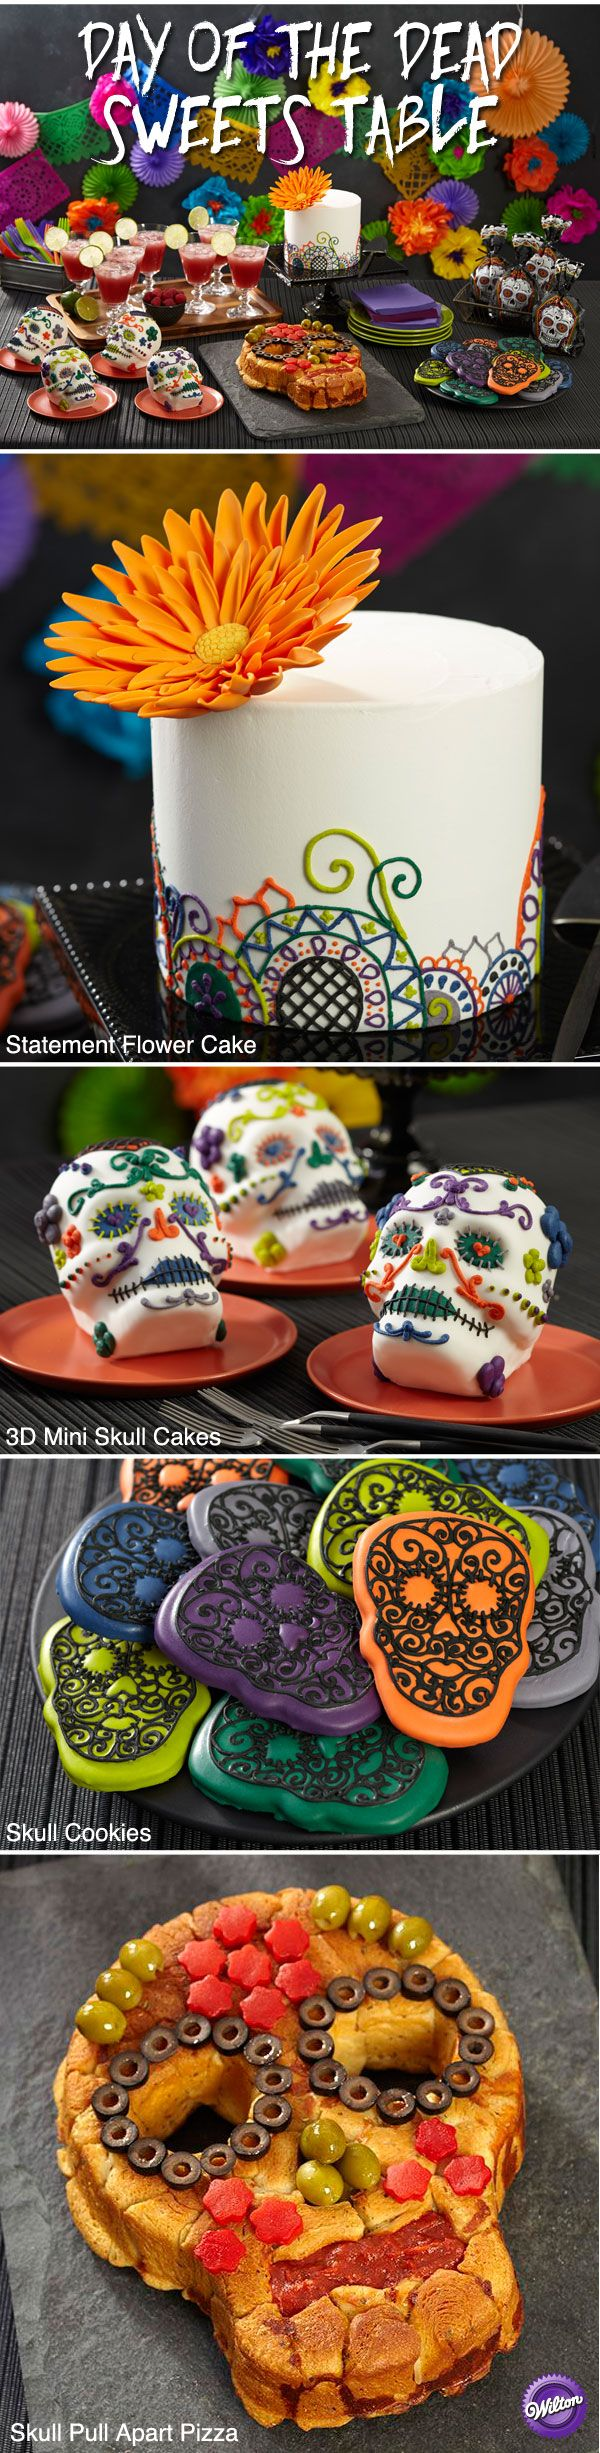 Plan a Day of the Dead themed sweets table for your Halloween party complete with a statement flower cake, 3D mini skull cakes, skull cookies and a skull pull-apart pizza!